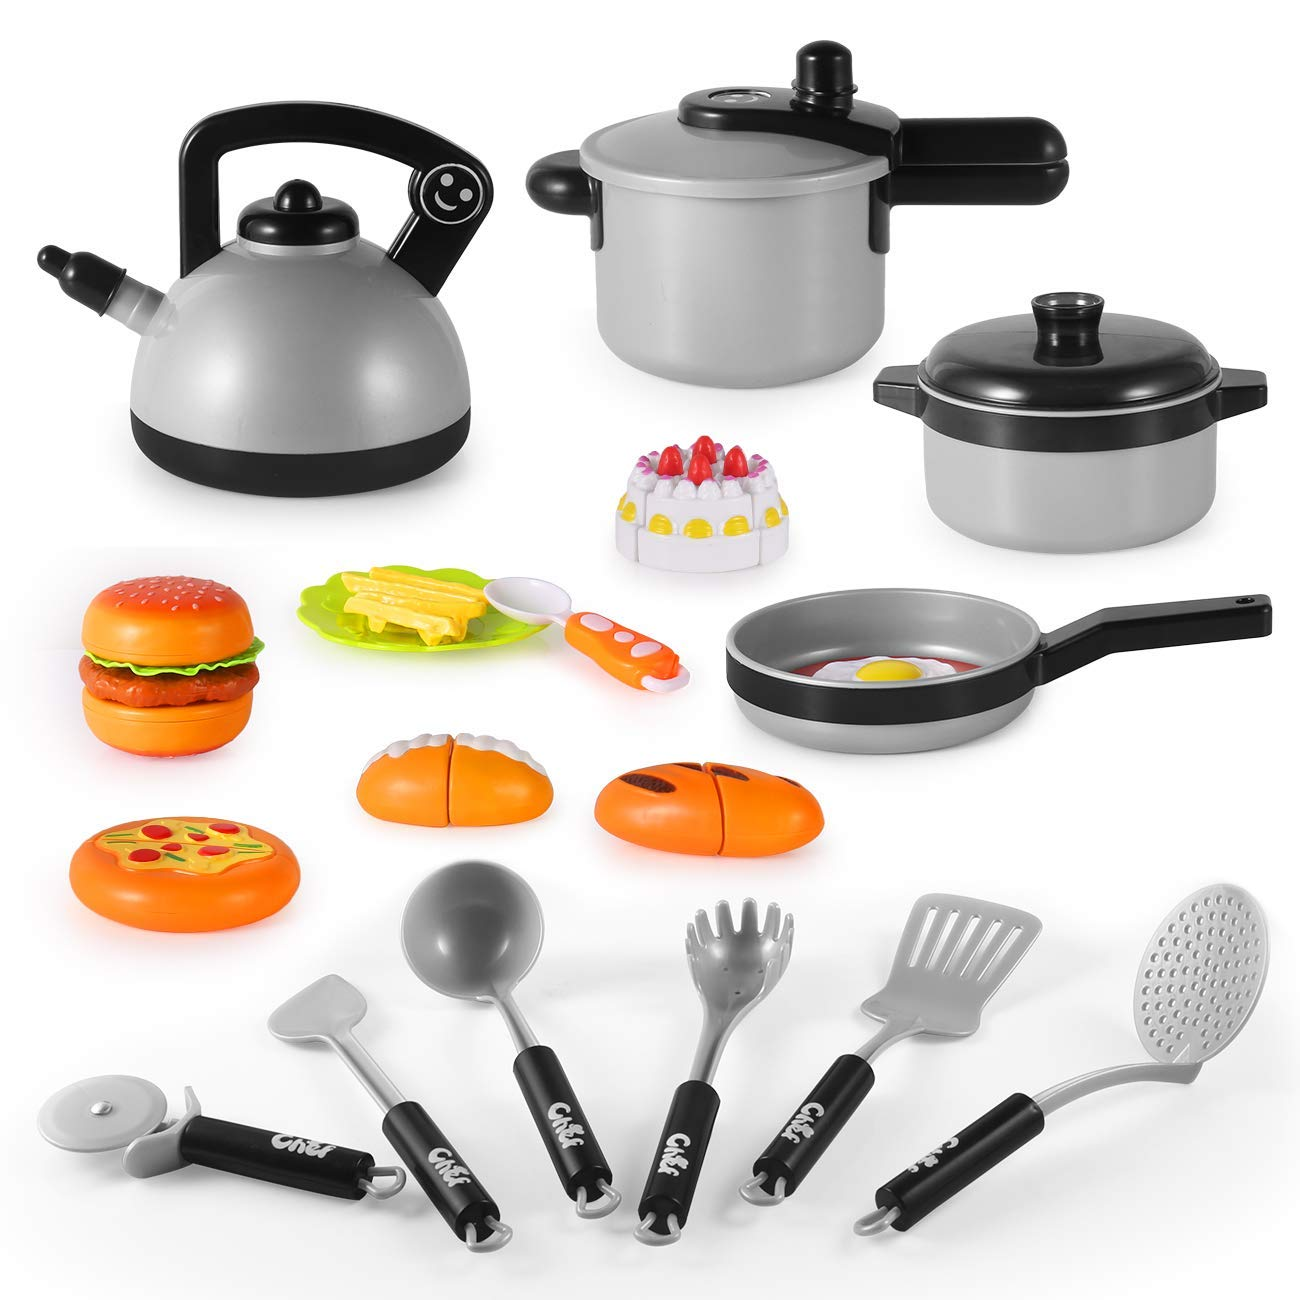 Pretend Play Kitchen Set for Kids, VANTAKOOL Kids Pretend Cooking Toys Cookware Playset for Kids with Pots & Pans Bundle for Kids, Learning Toy for 2 3 4 5 Year Olds Boys, Girls, Toddlers